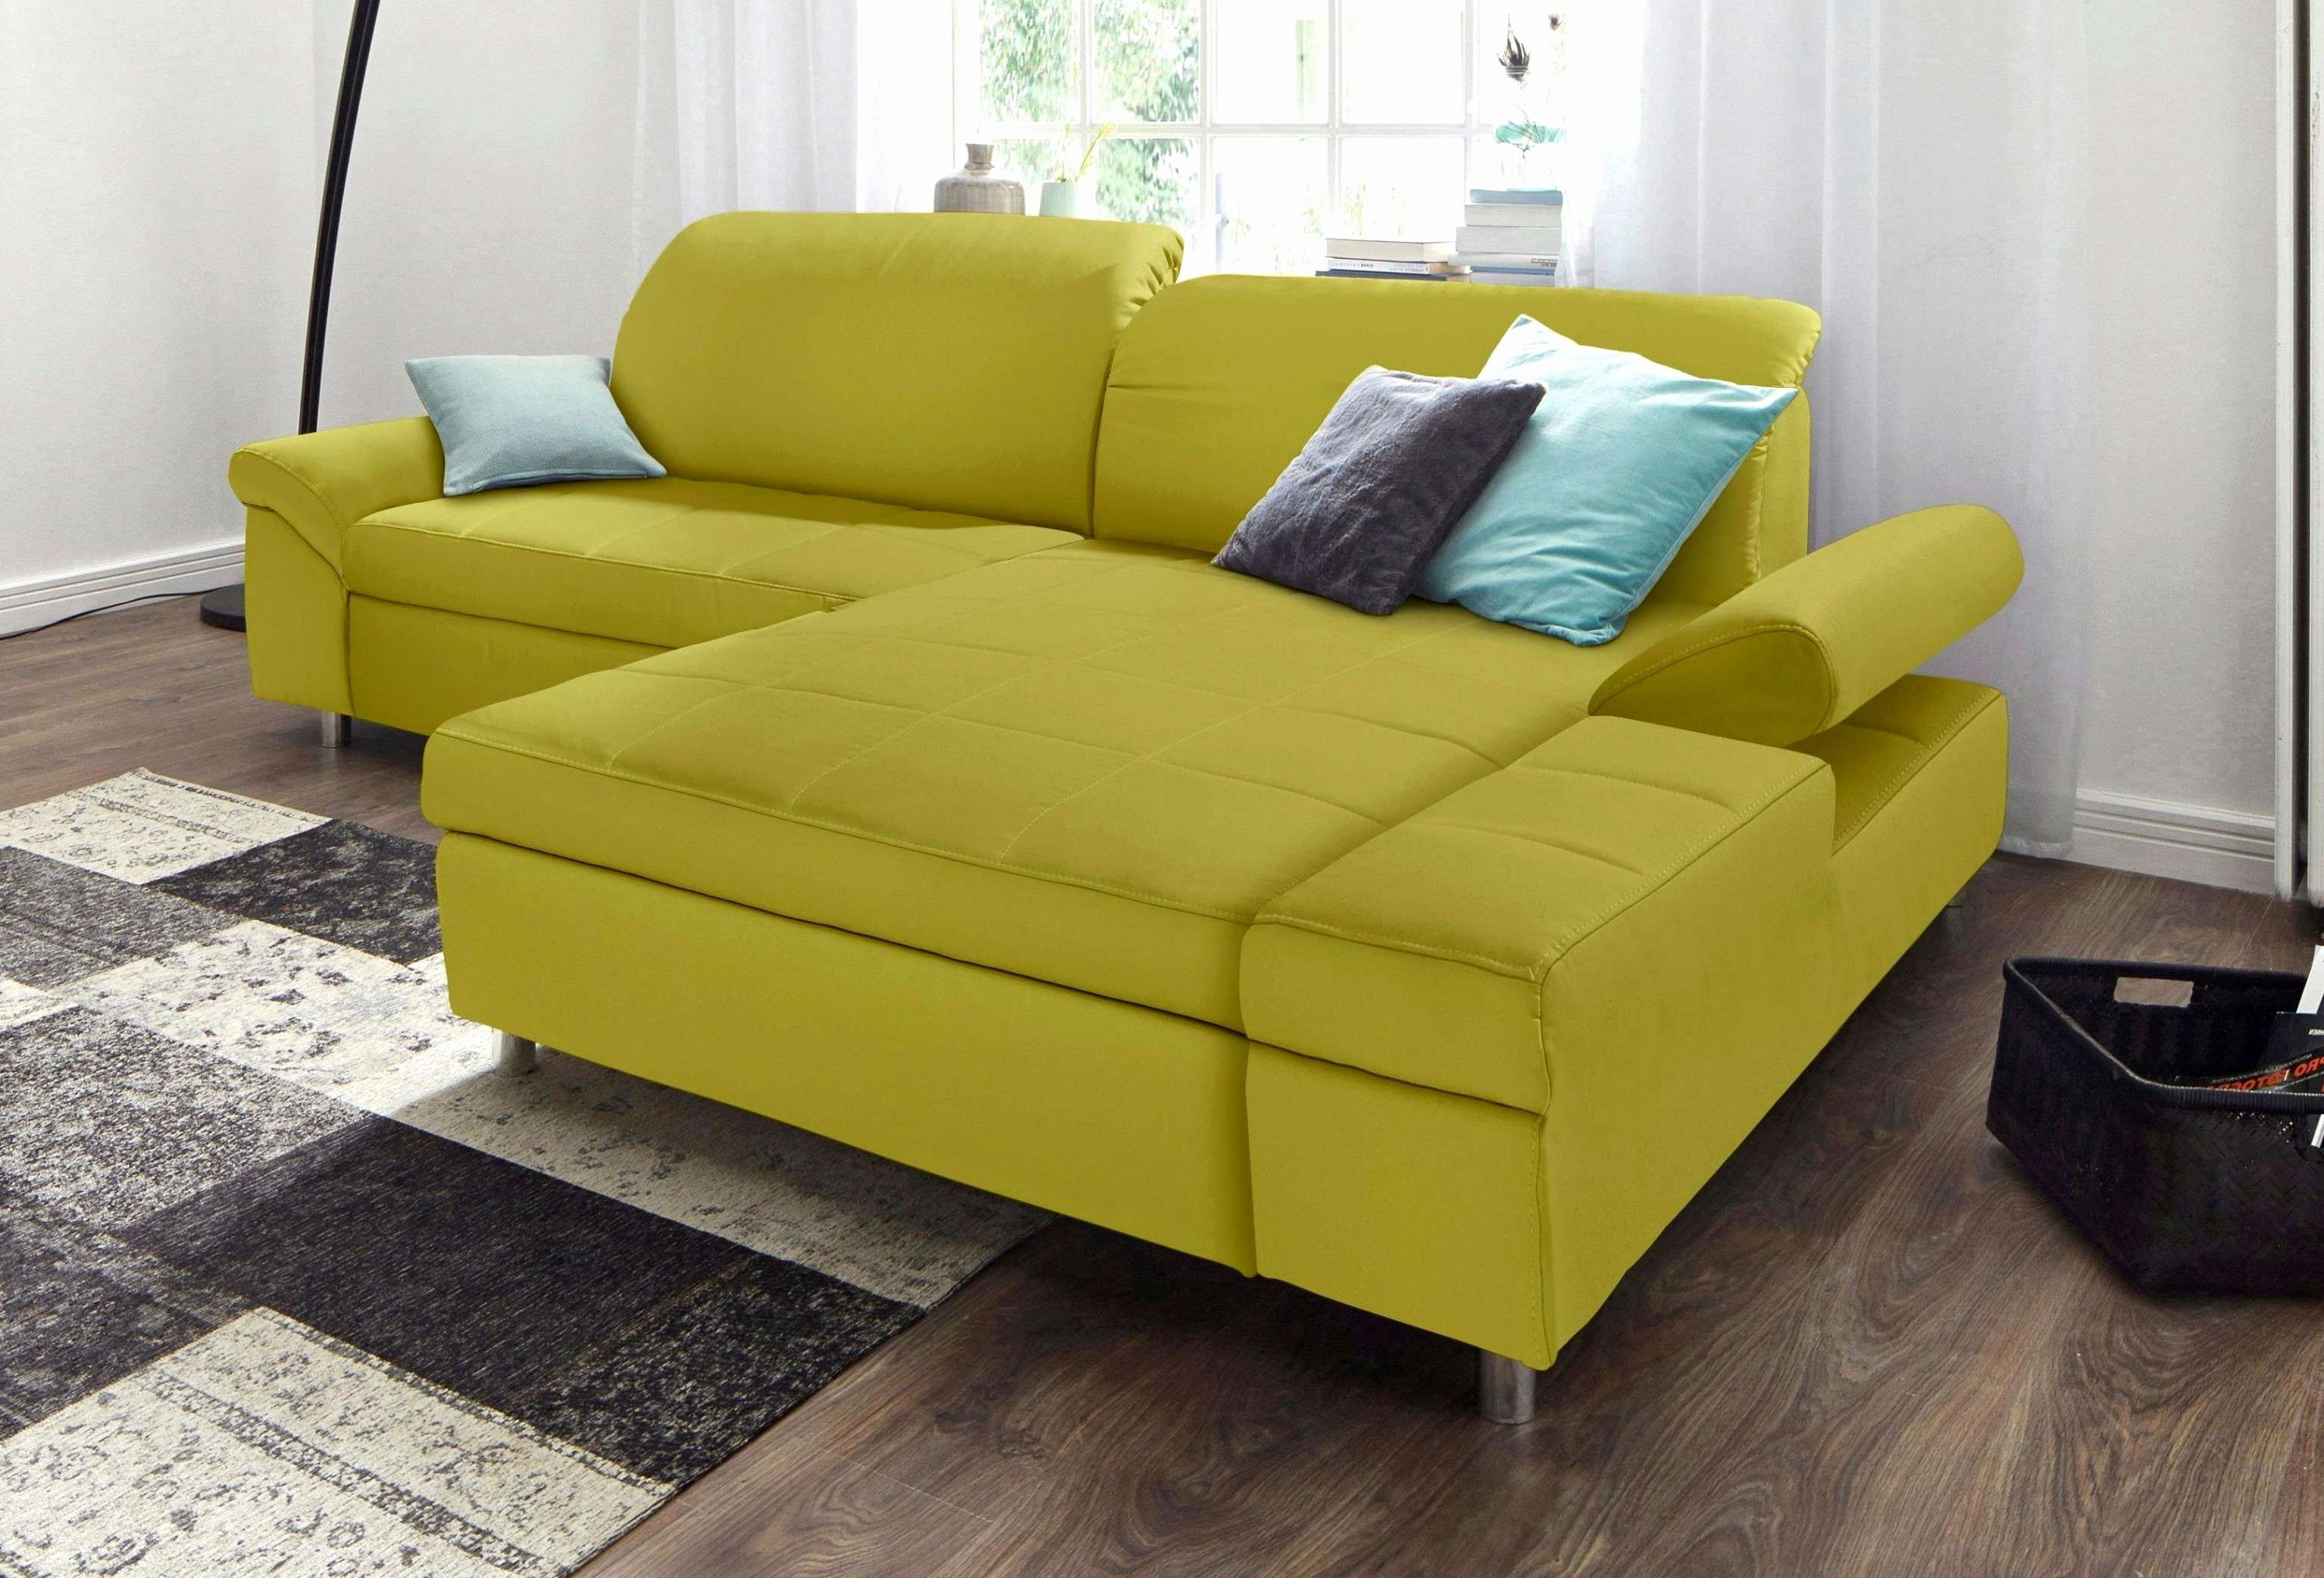 22 Neue Synergie Haus Sleeper Sofa Sofa Yellow Living Room Murphy Bed Sofa Grey And Yellow Living Room